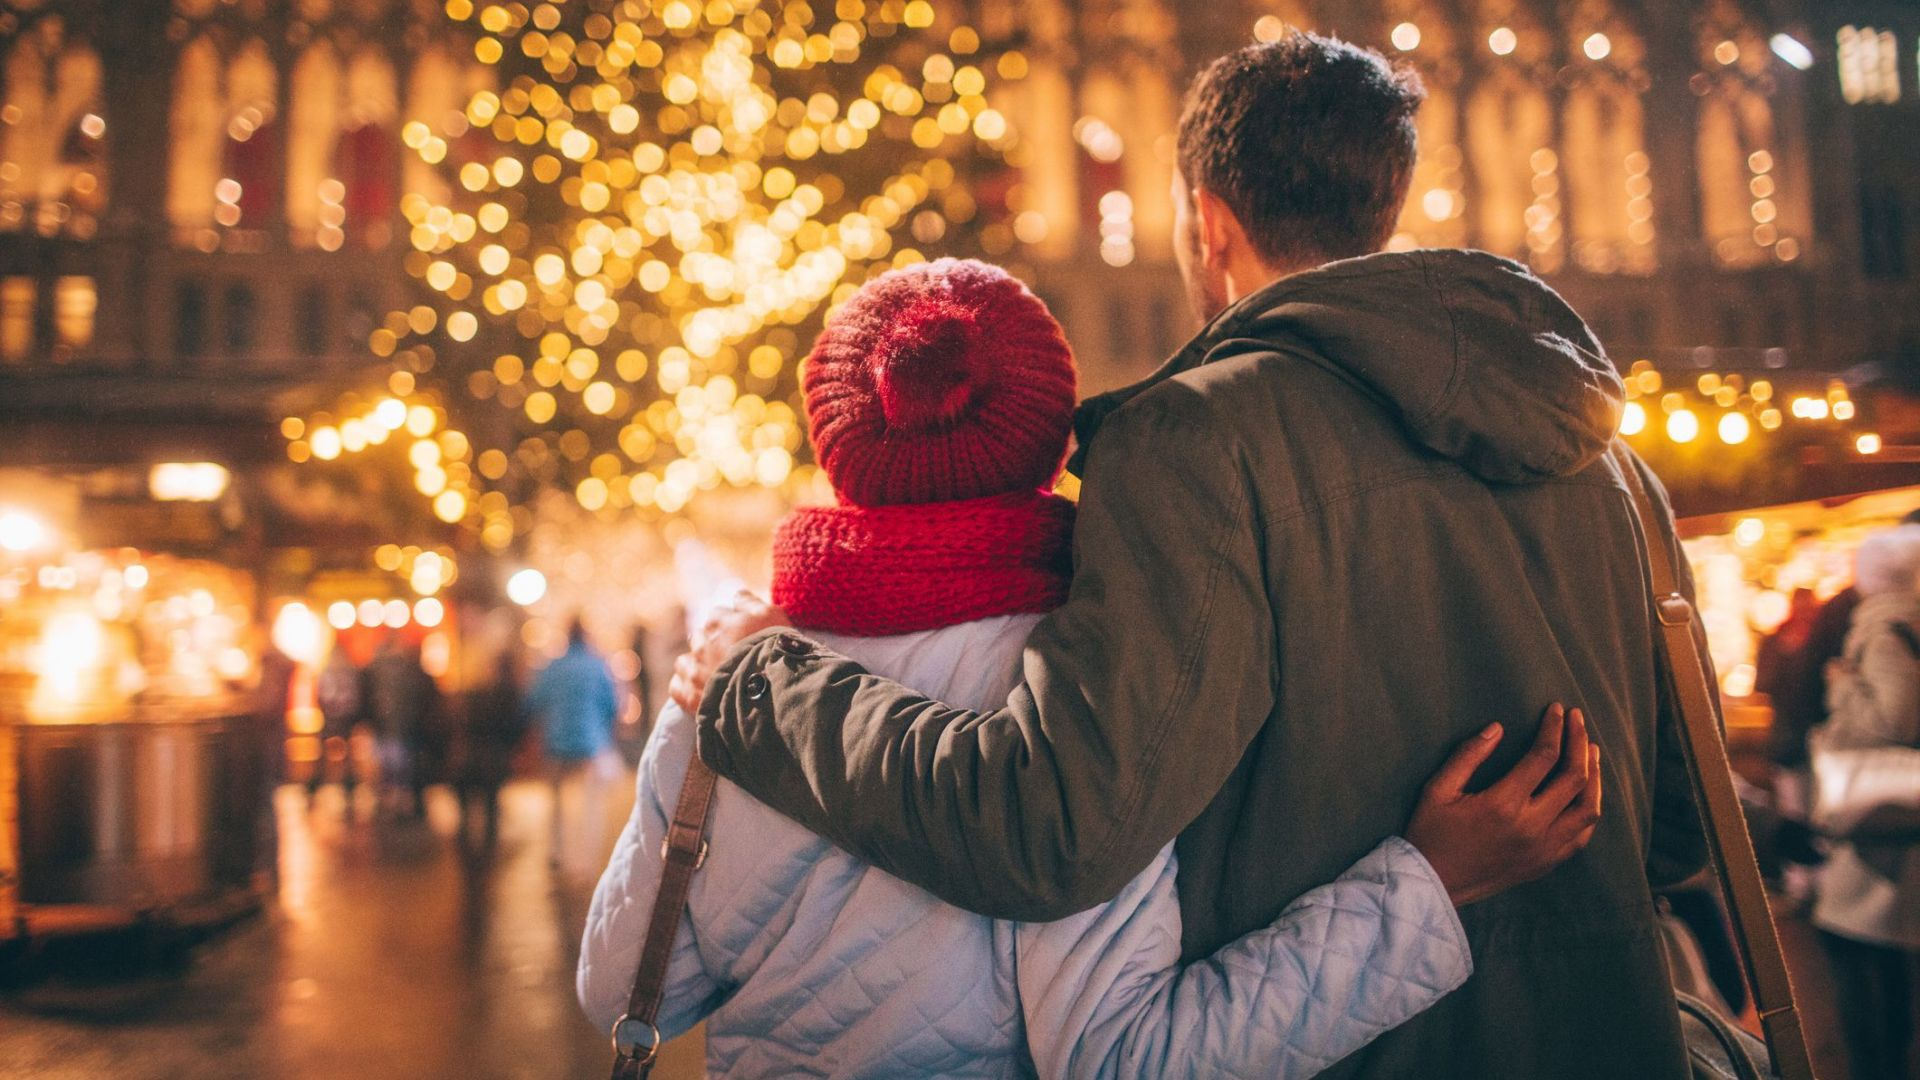 Christmas market, young couple in front of a christmas tree